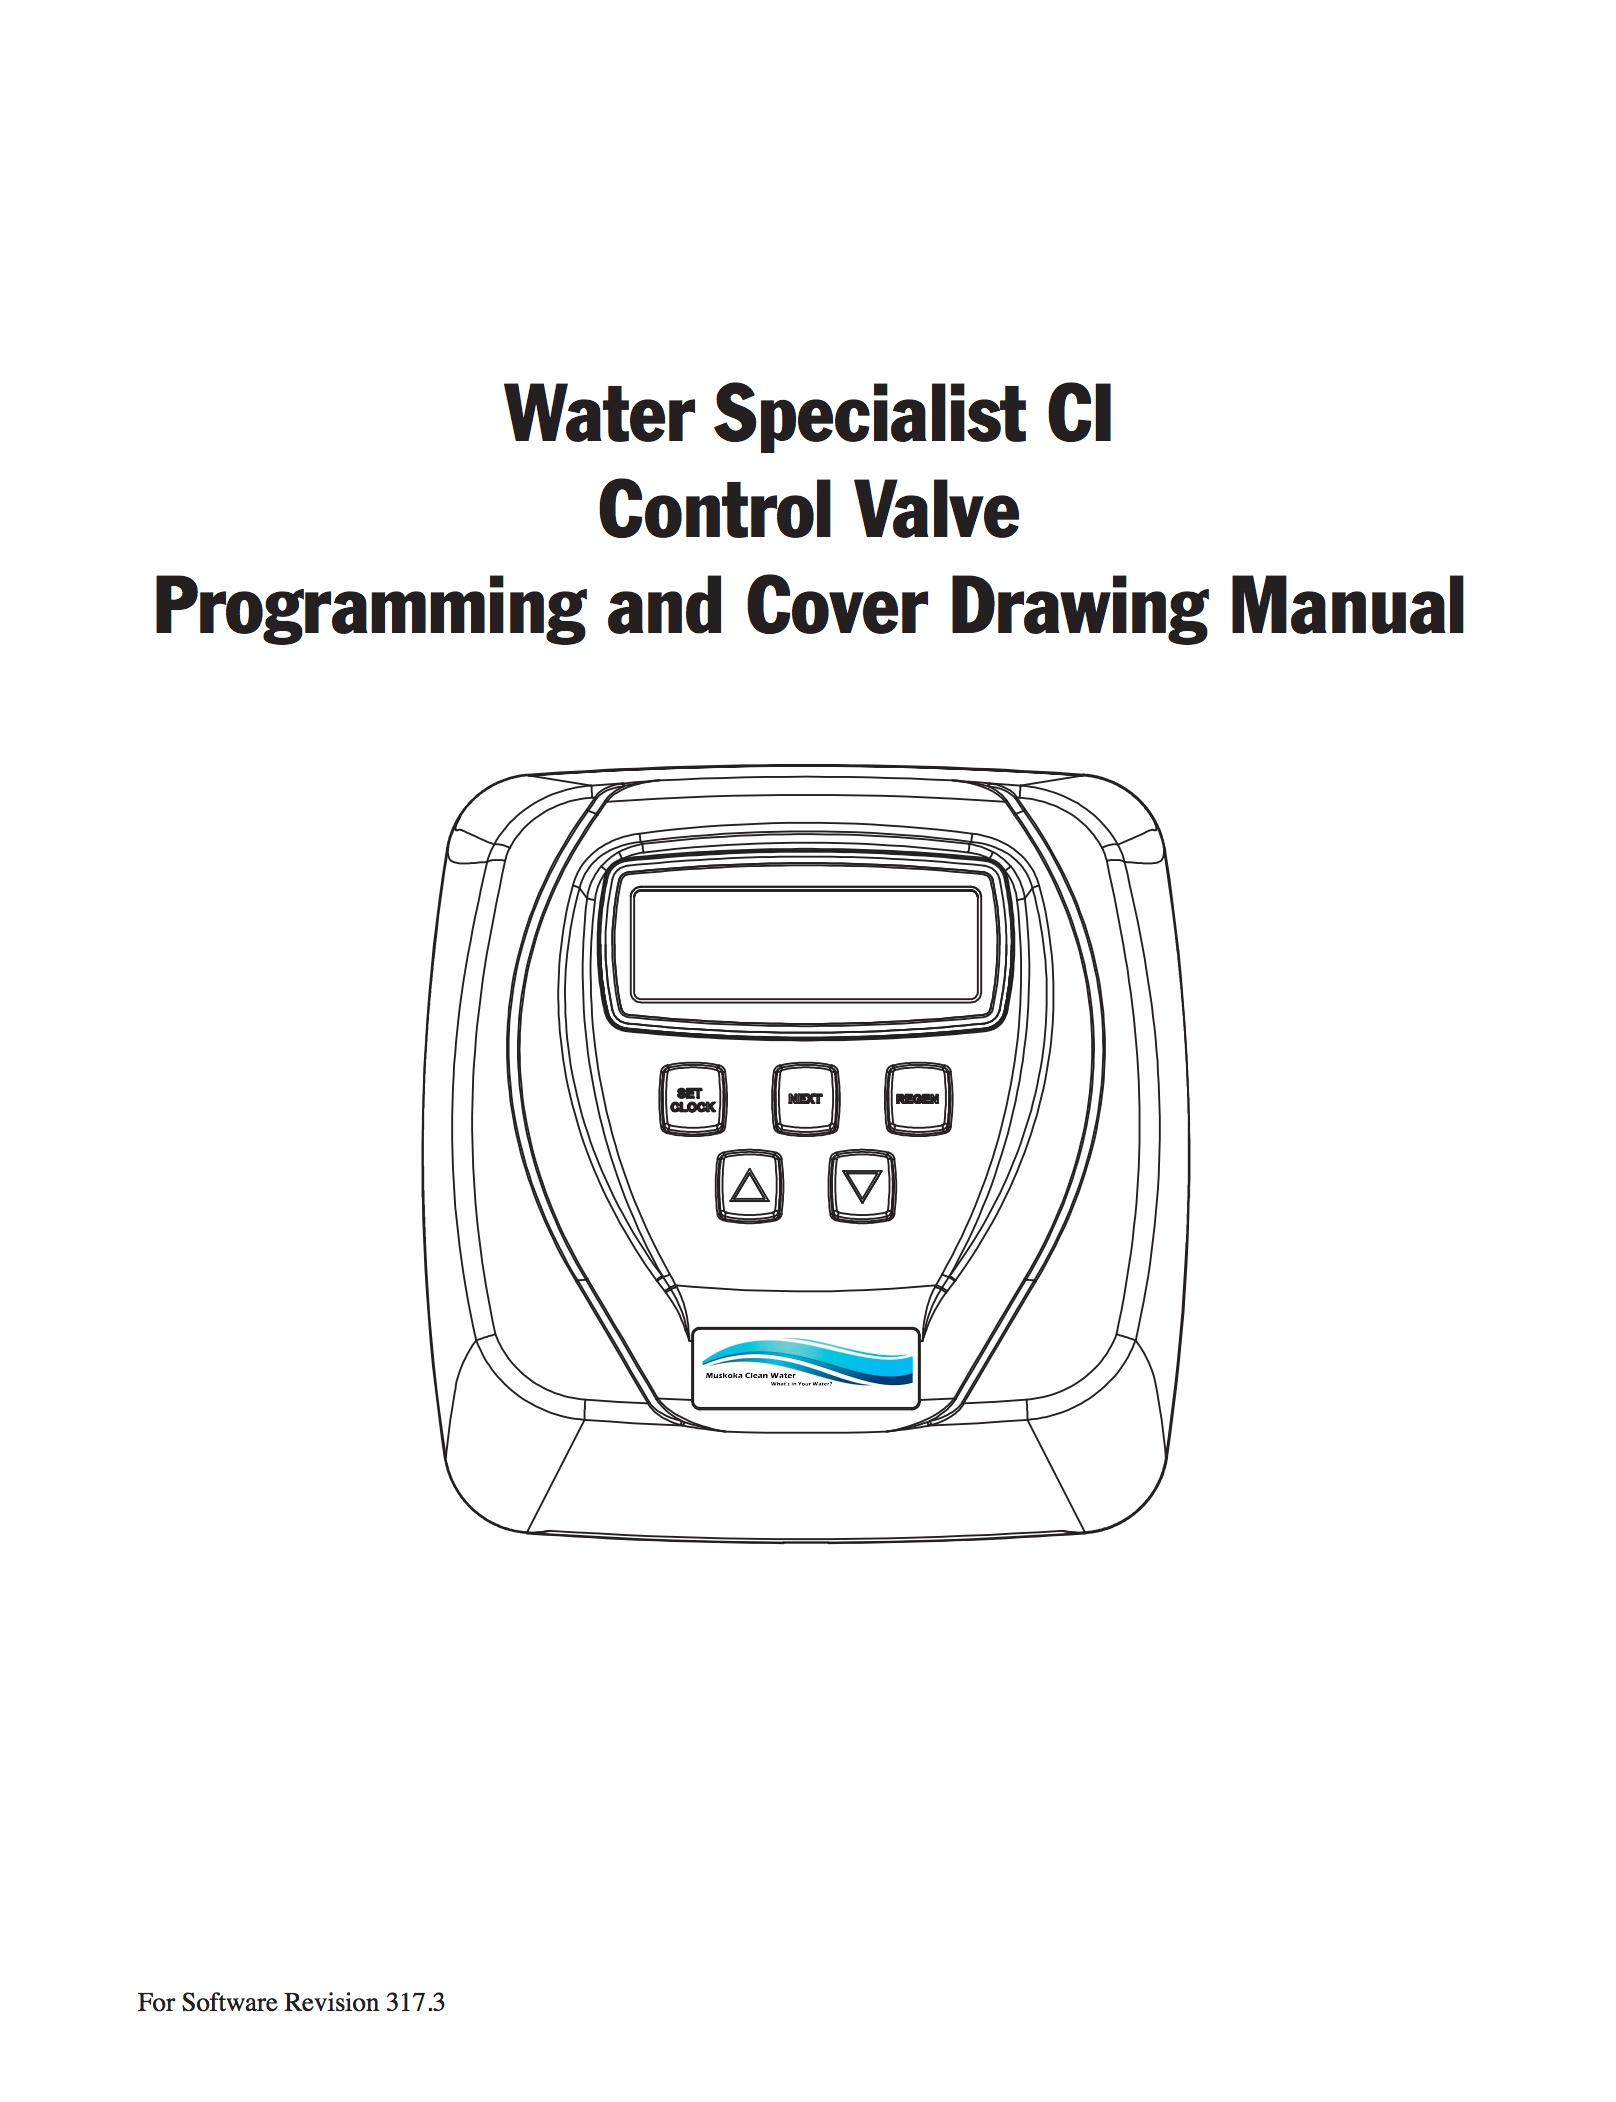 Welcome to Muskoka Clean Water's Manual download page.